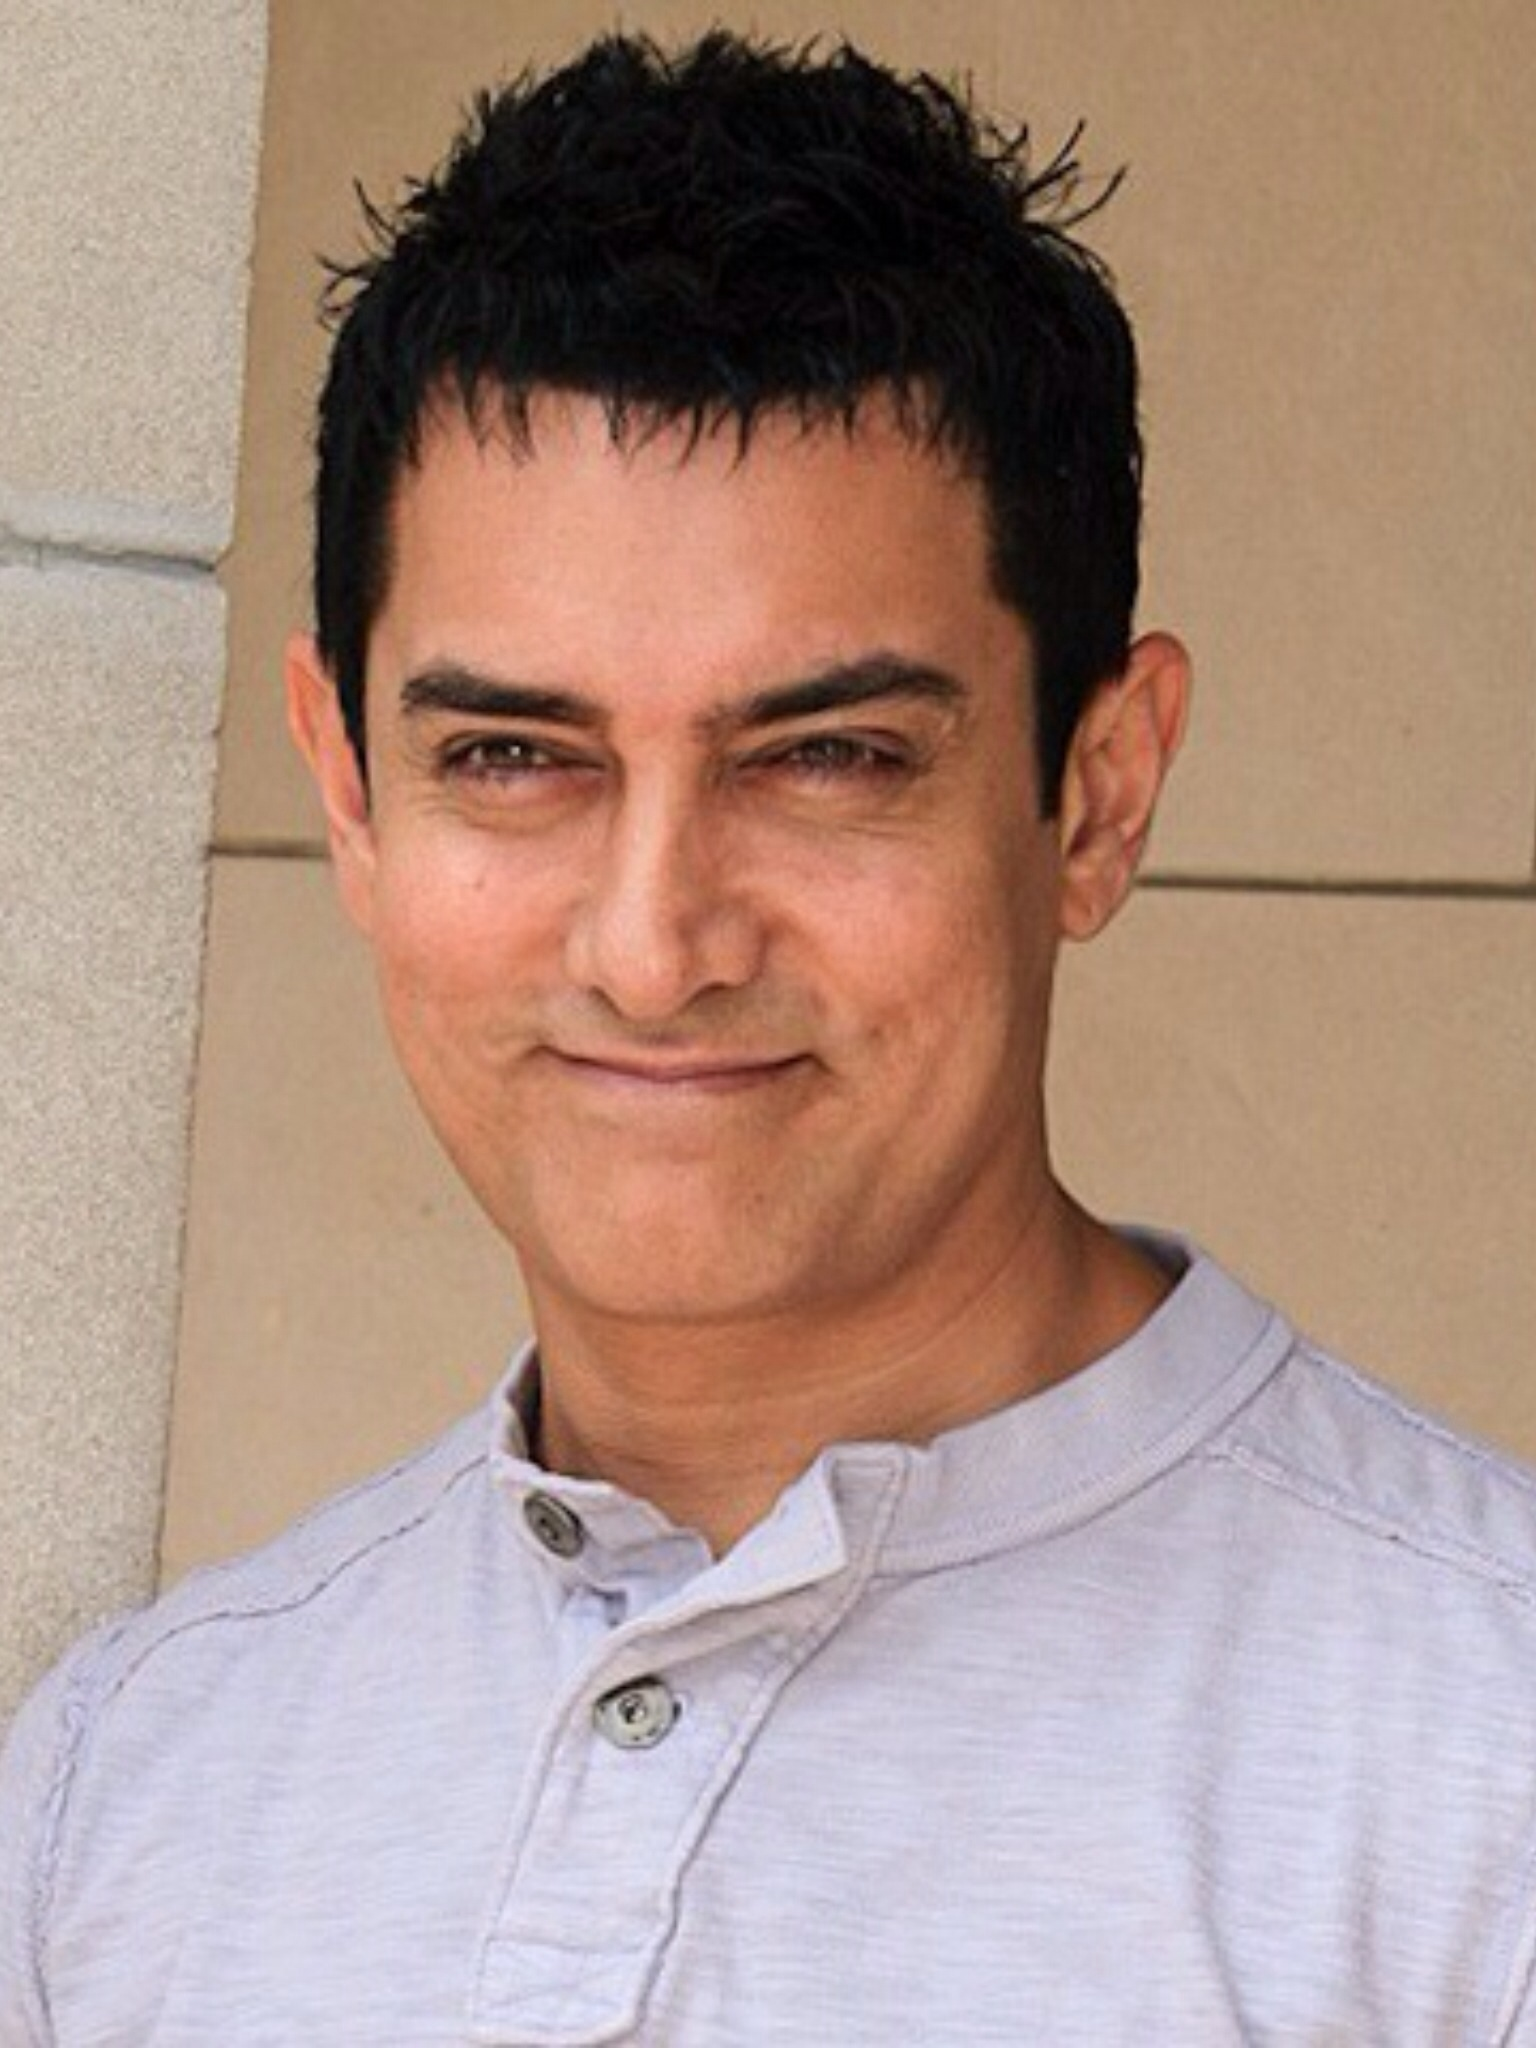 Photograph of Aamir Khan